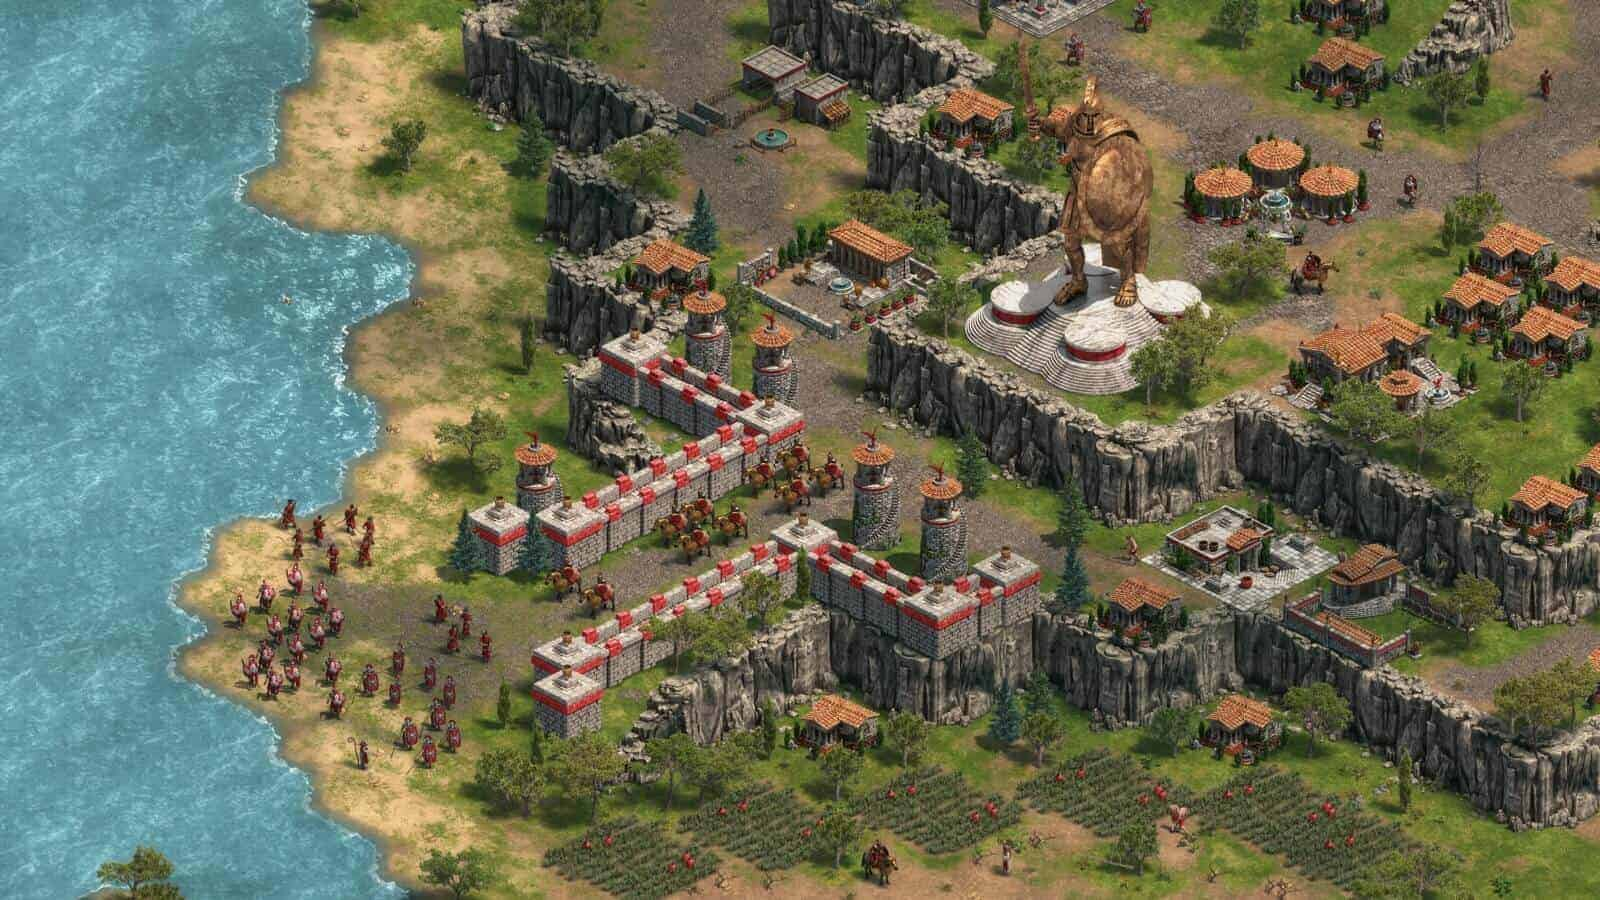 age of empires download free full version for windows 7